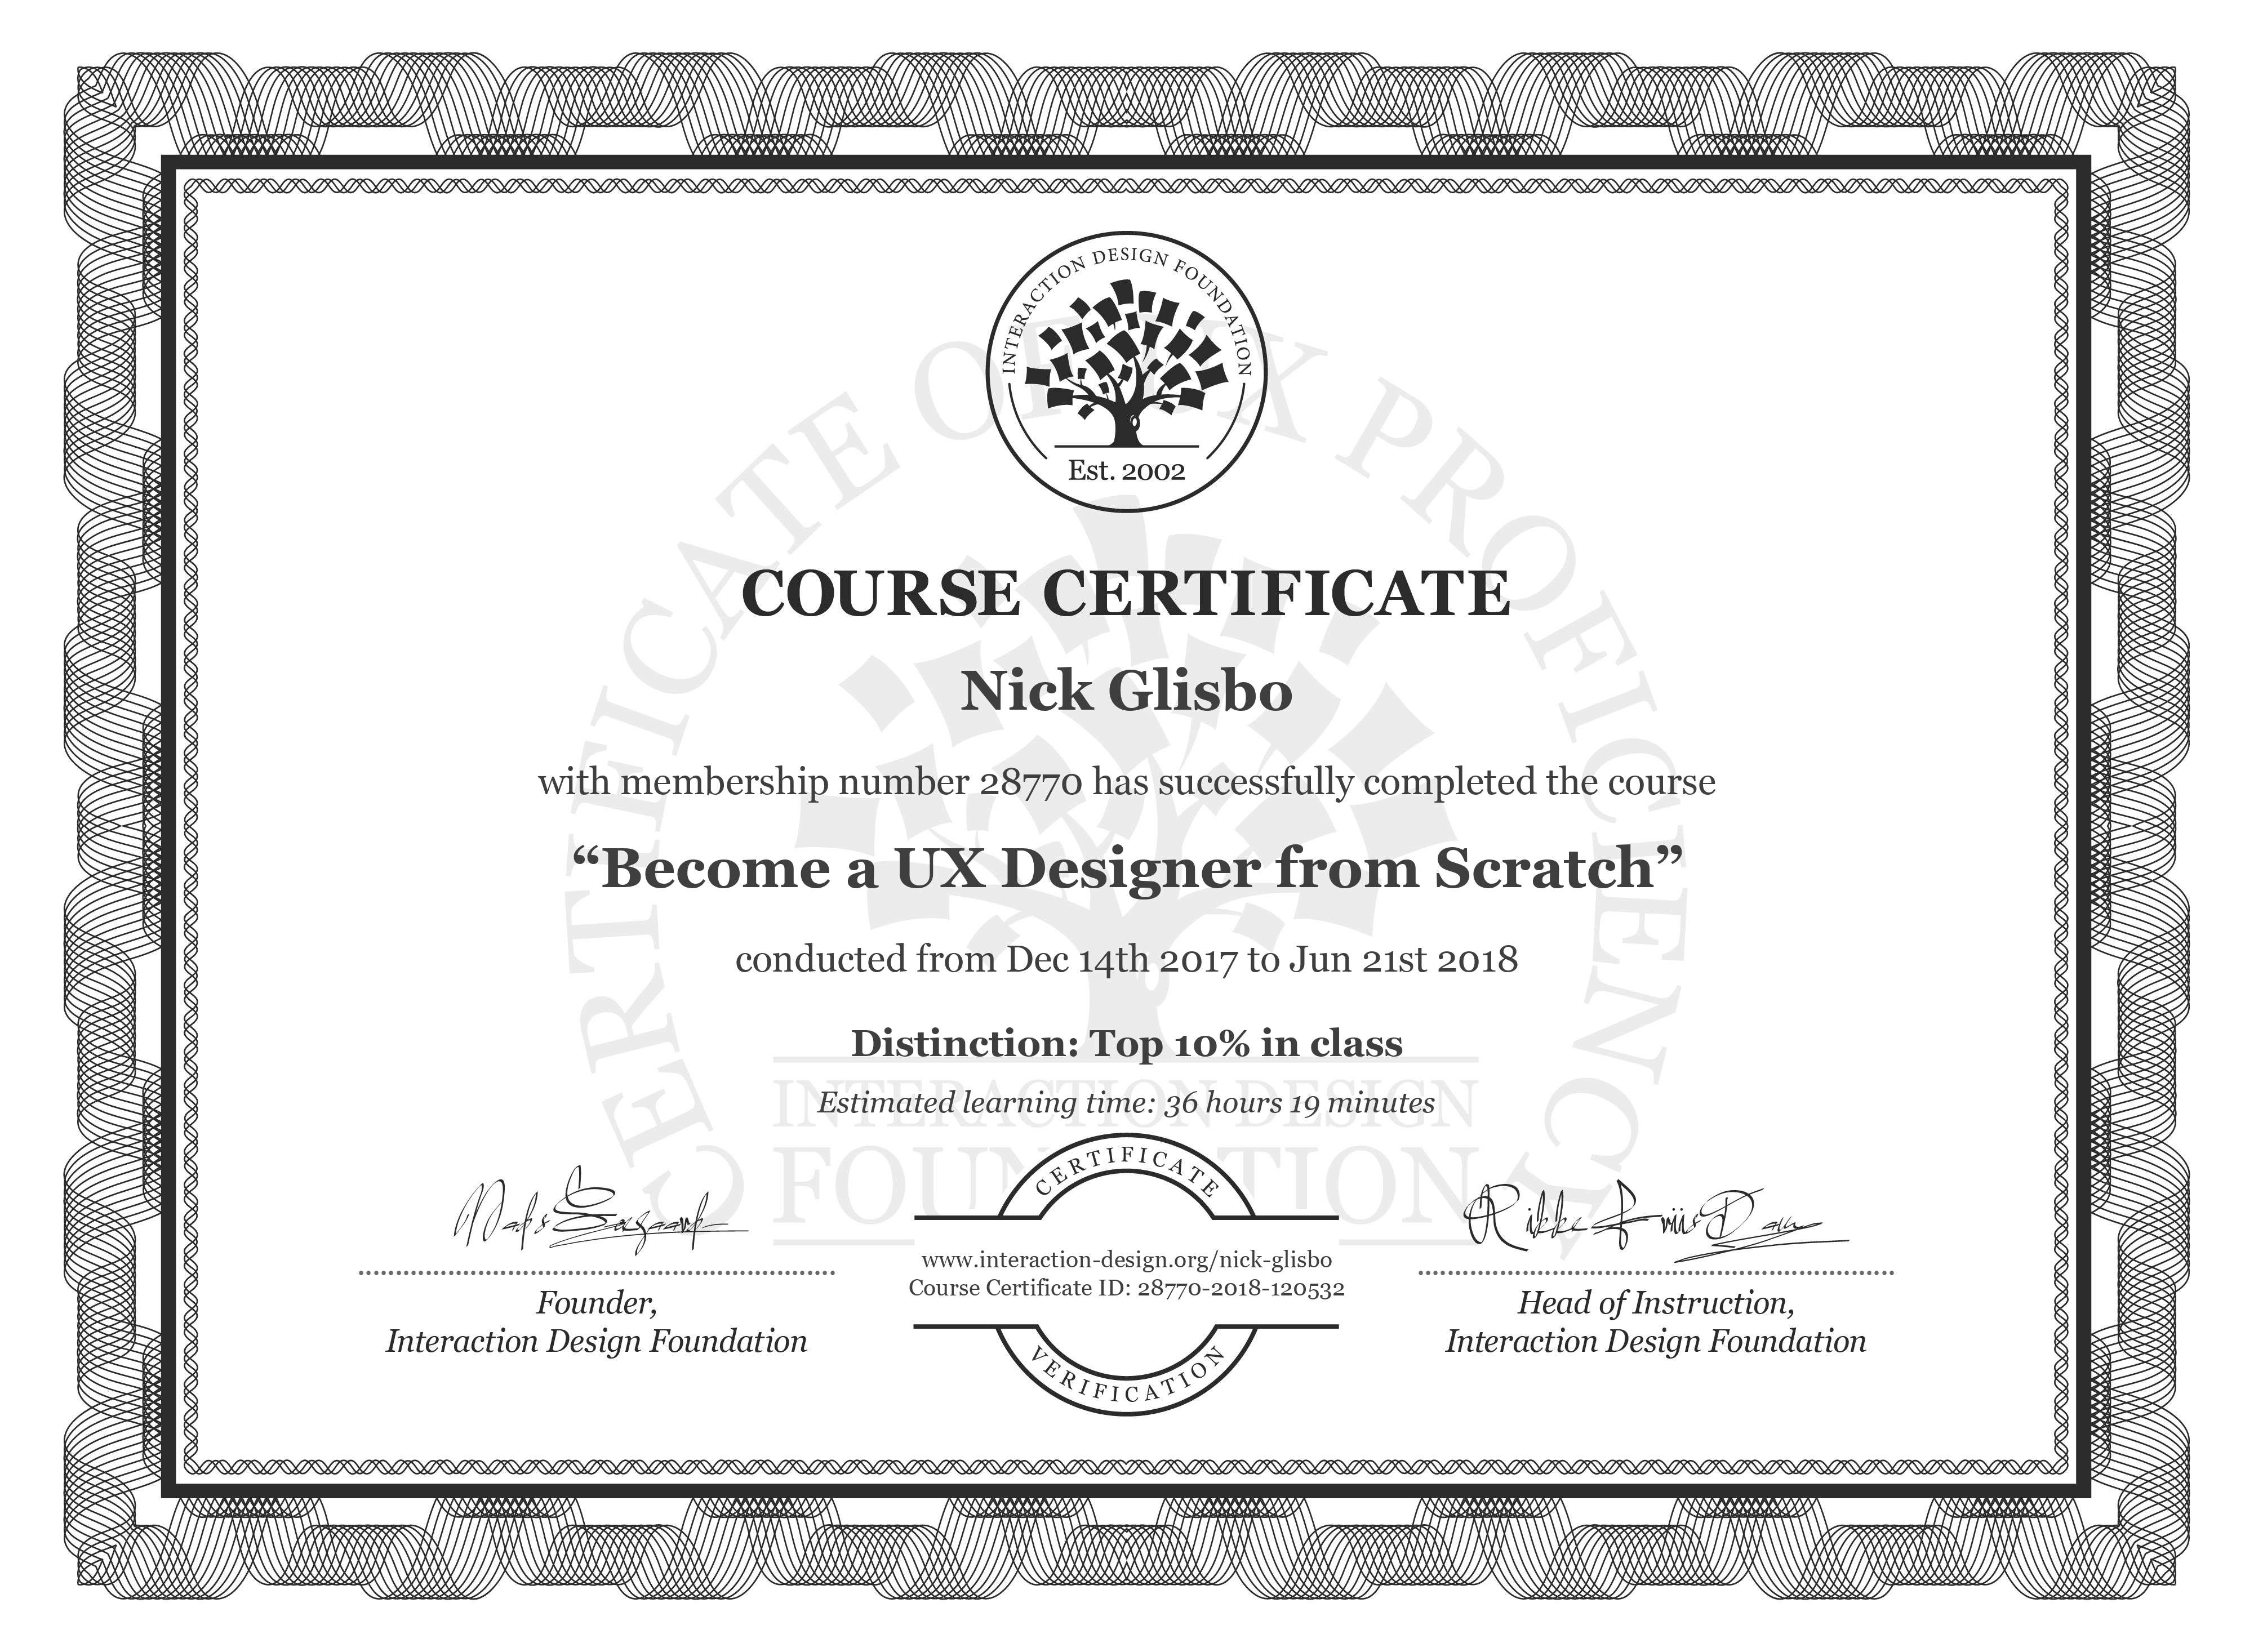 Nick Glisbo: Course Certificate - Become a UX Designer from Scratch